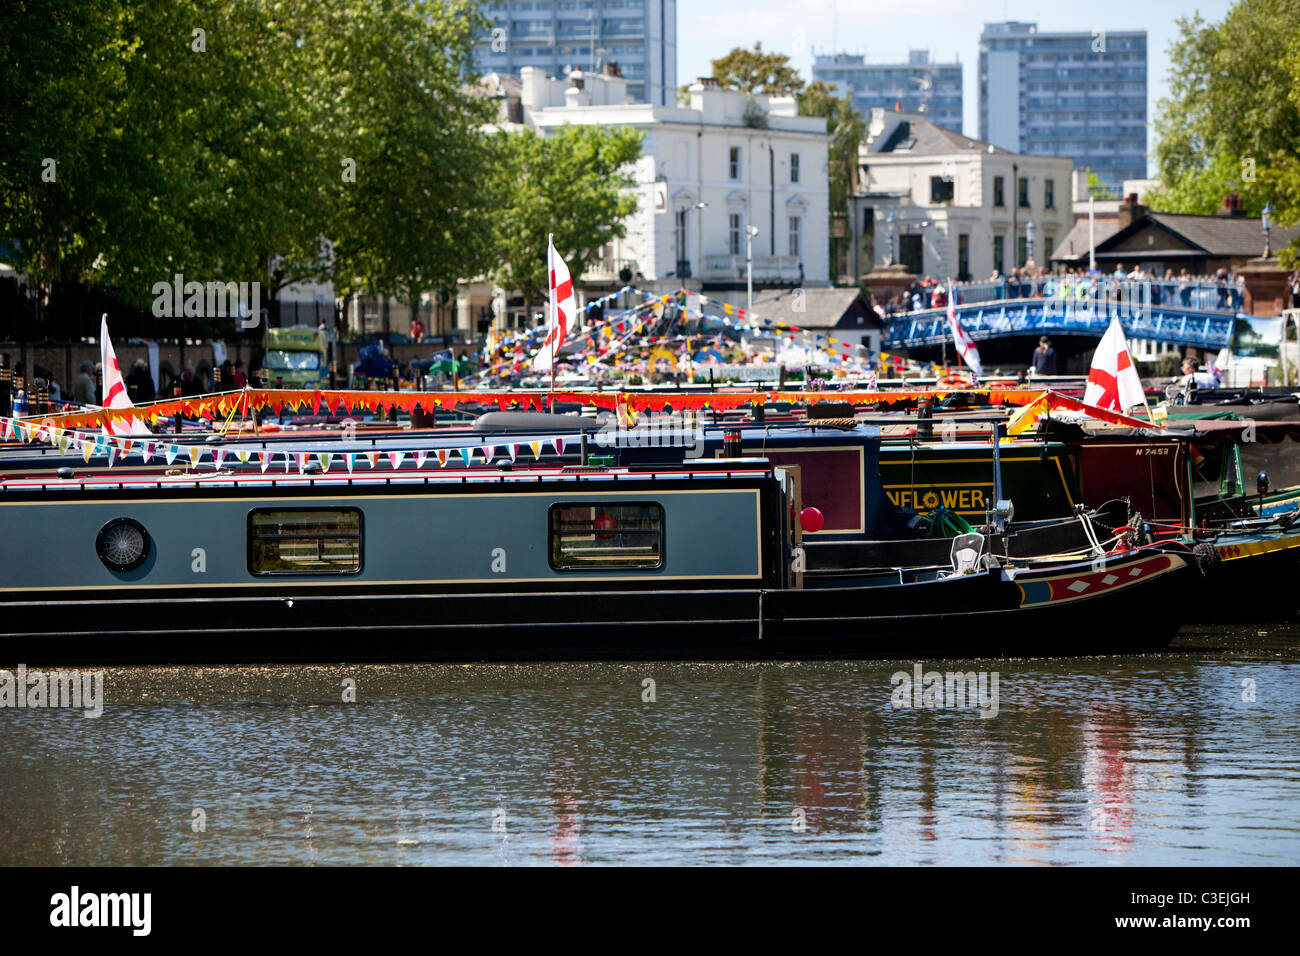 Narrowboats on Regent's Canal at Little Venice, London, England, UK - Stock Image